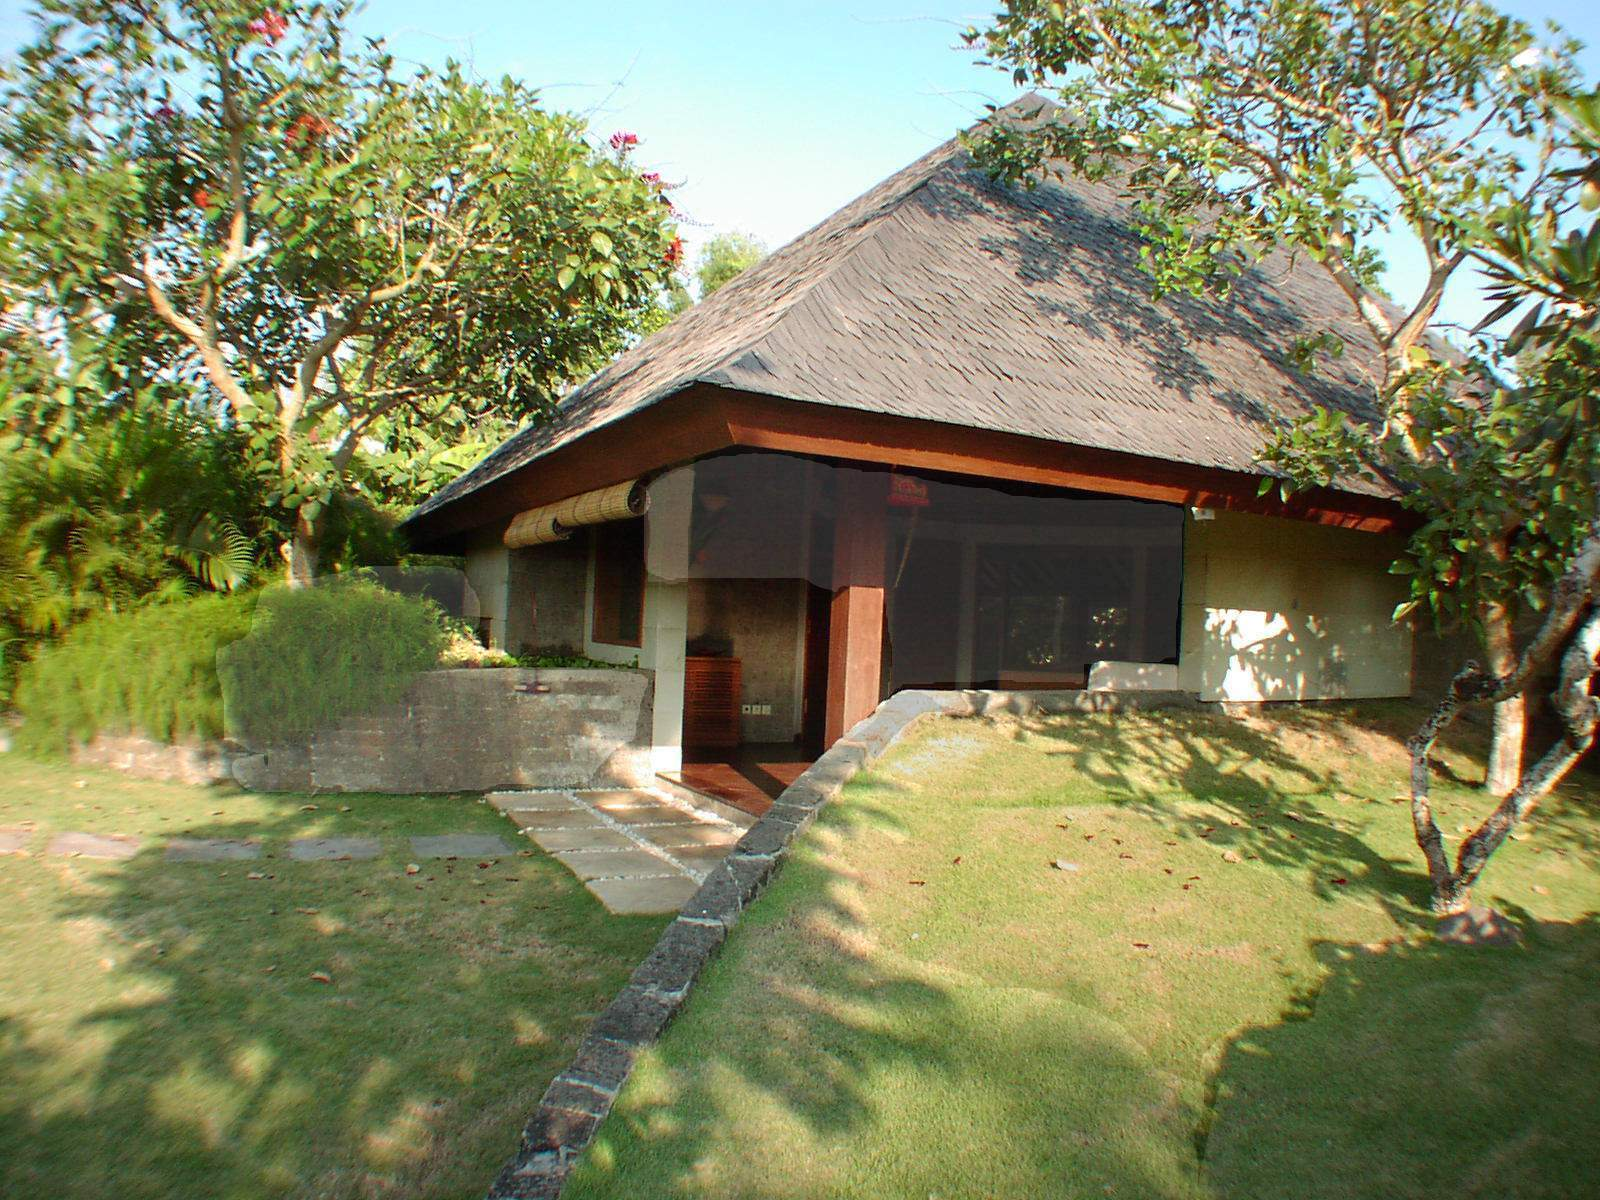 Type of accomodation in bali car rental bali karental id for Cottage bali